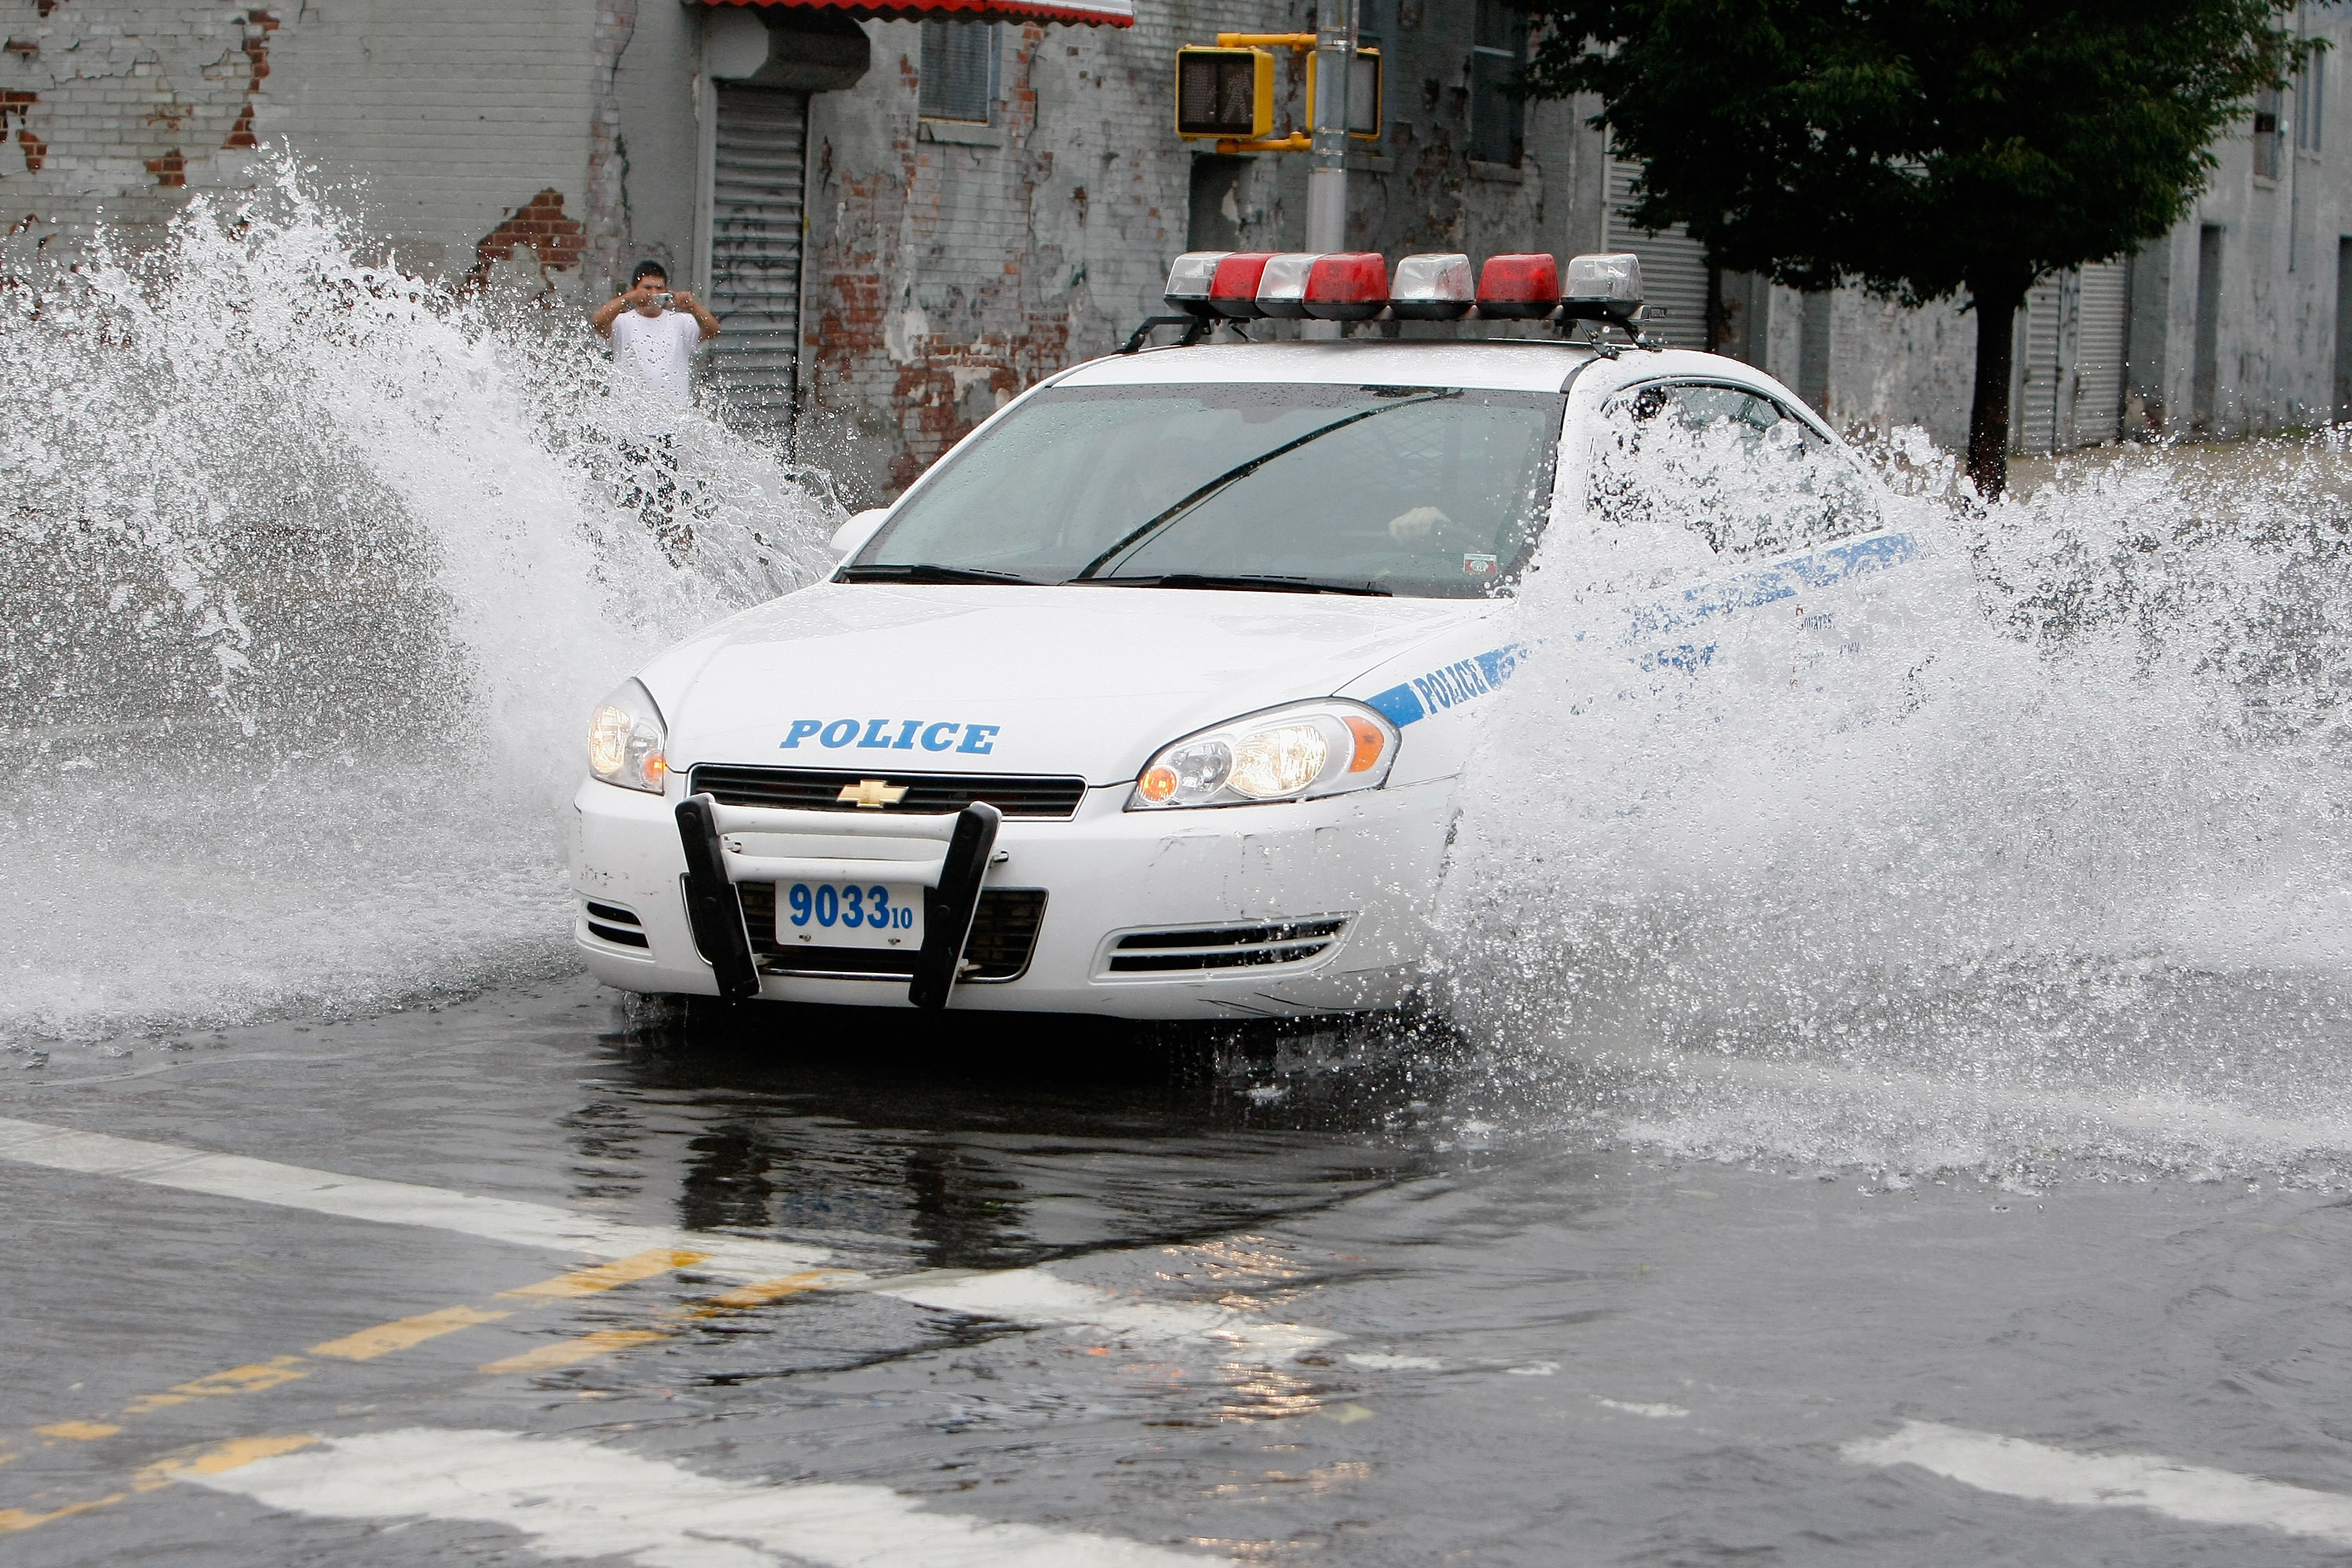 Meanwhile, Chevy is planning a cop car that is also a boat, for when global warming floods our cities. (Not really).